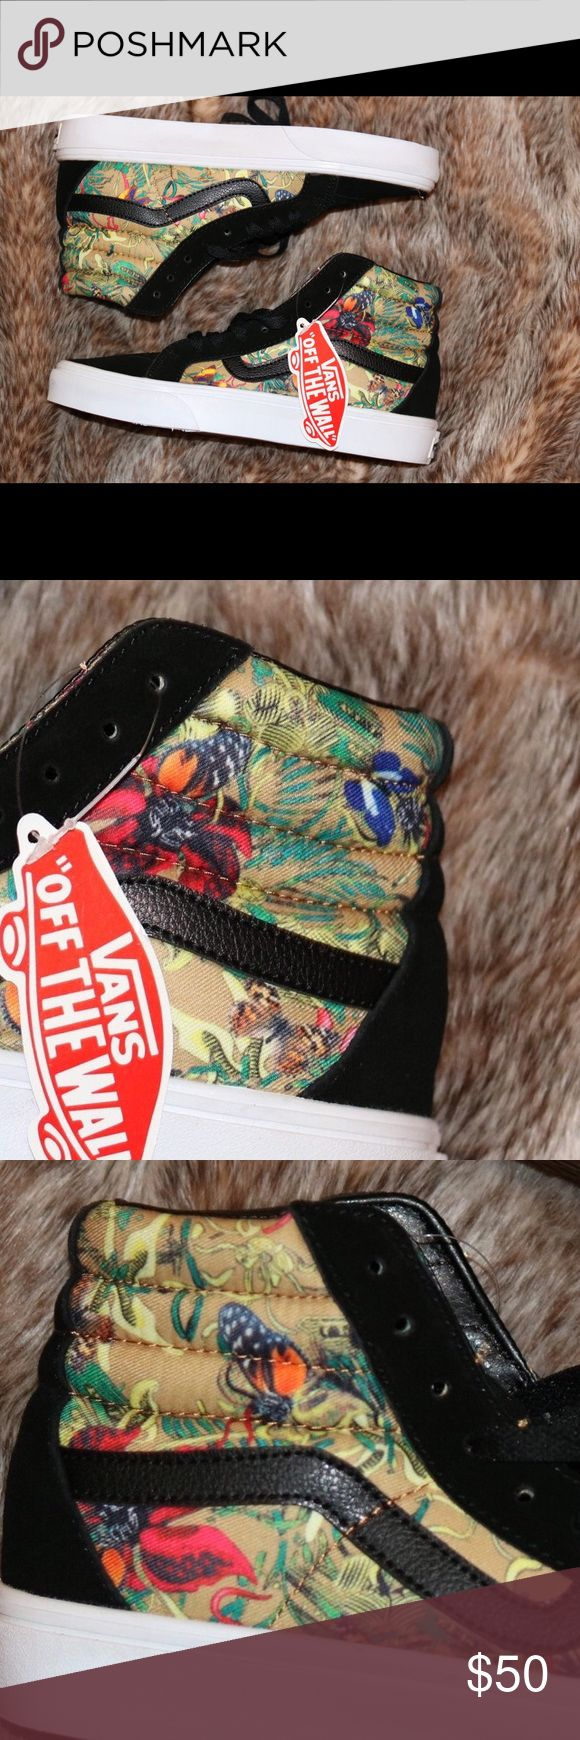 vans butterfly/jungle/floral sk8 his skate highs super unique and brand new. paid $70 for them. make me an offer! Vans Shoes Sneakers